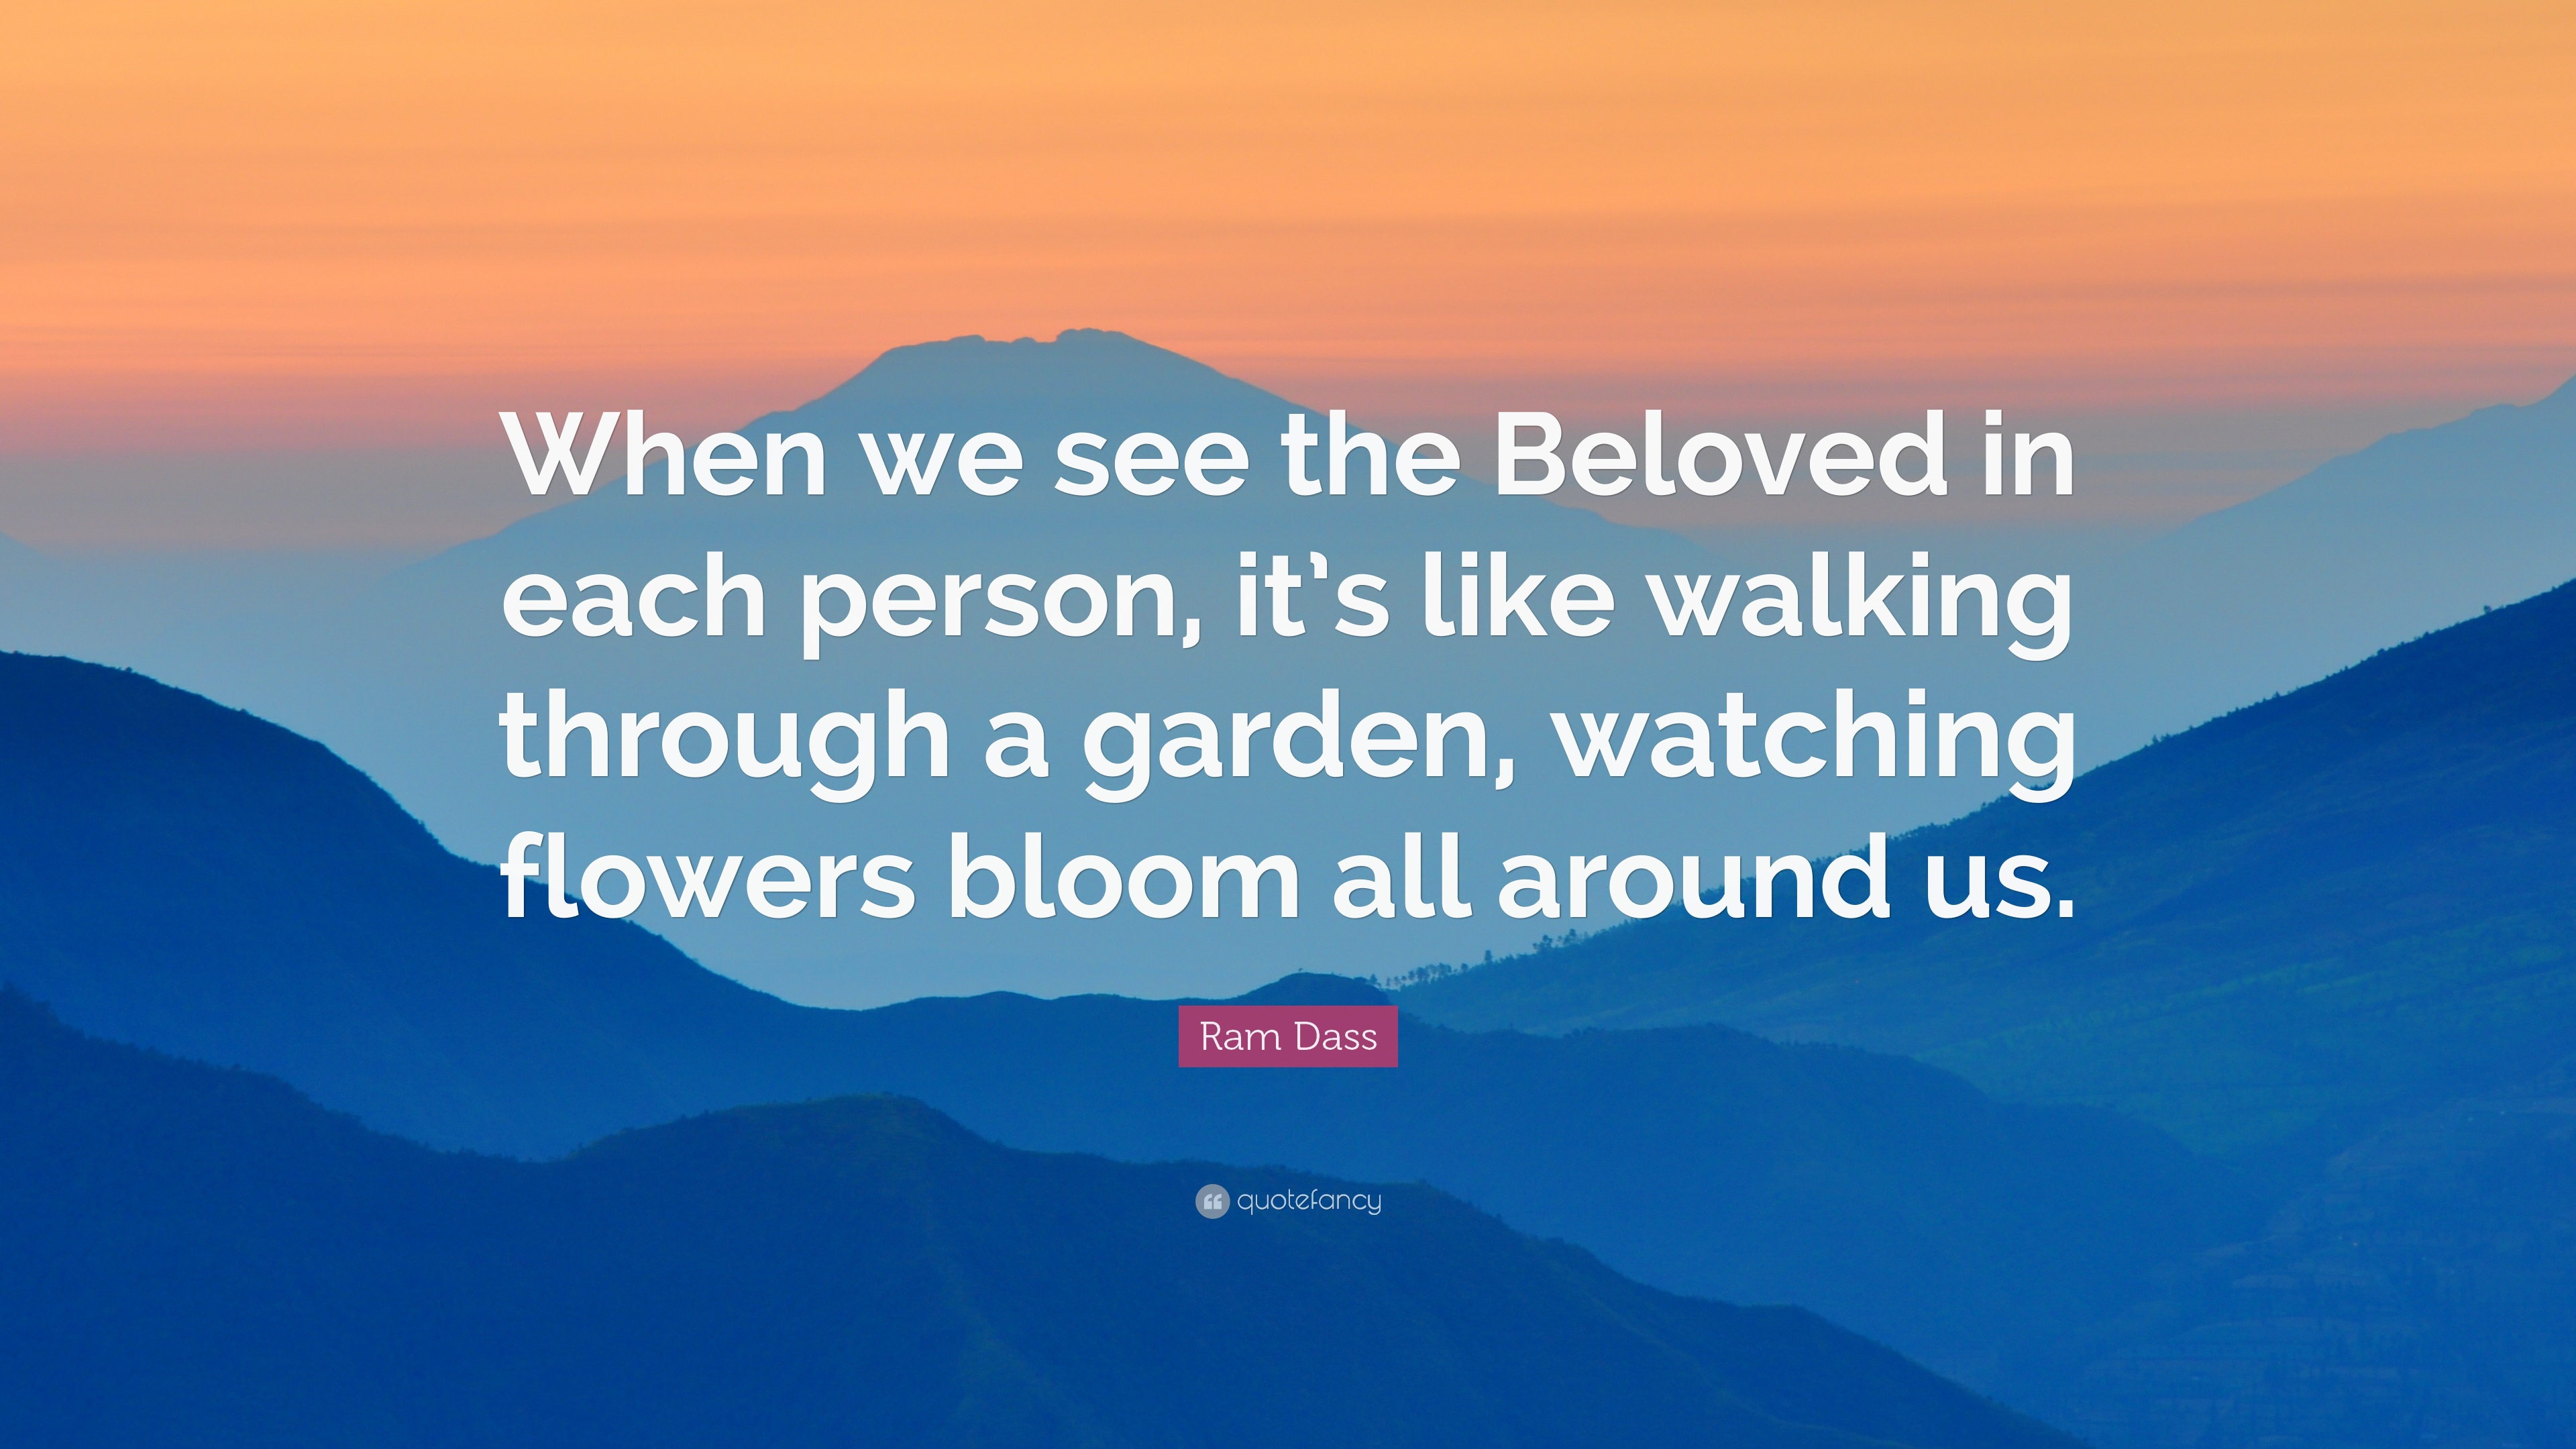 Ram dass quote when we see the beloved in each person - When you walk through the garden ...